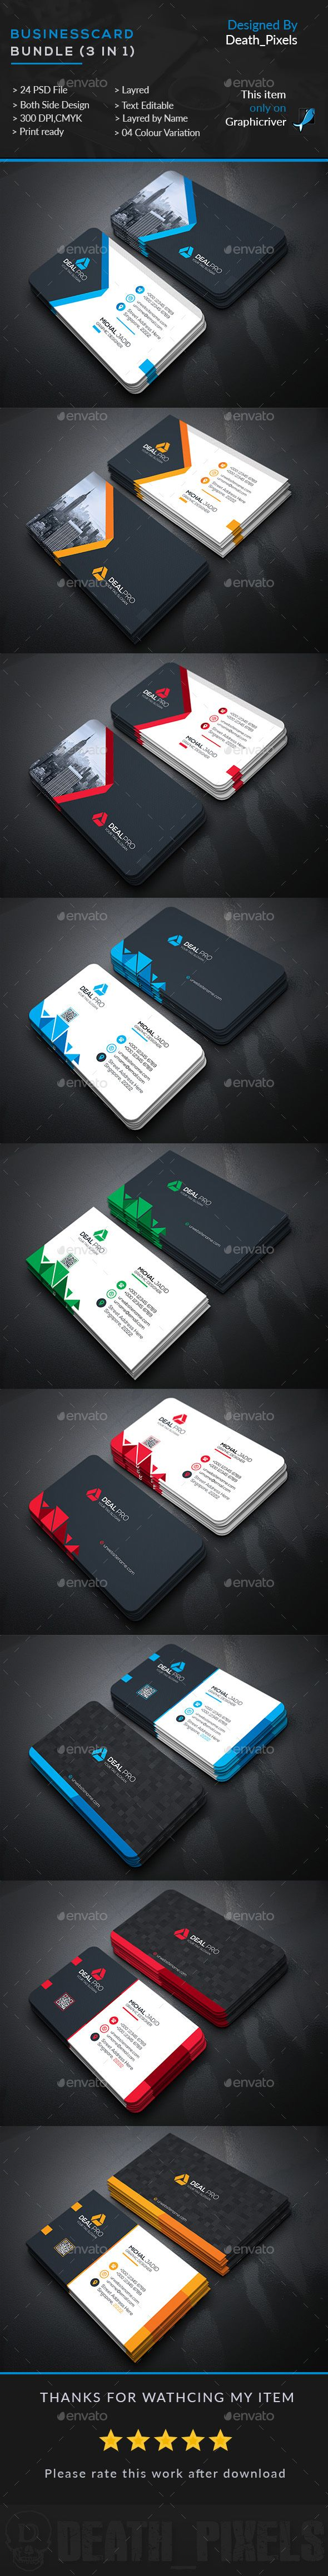 10 best Business Card Design by Web Studio Monaco images on